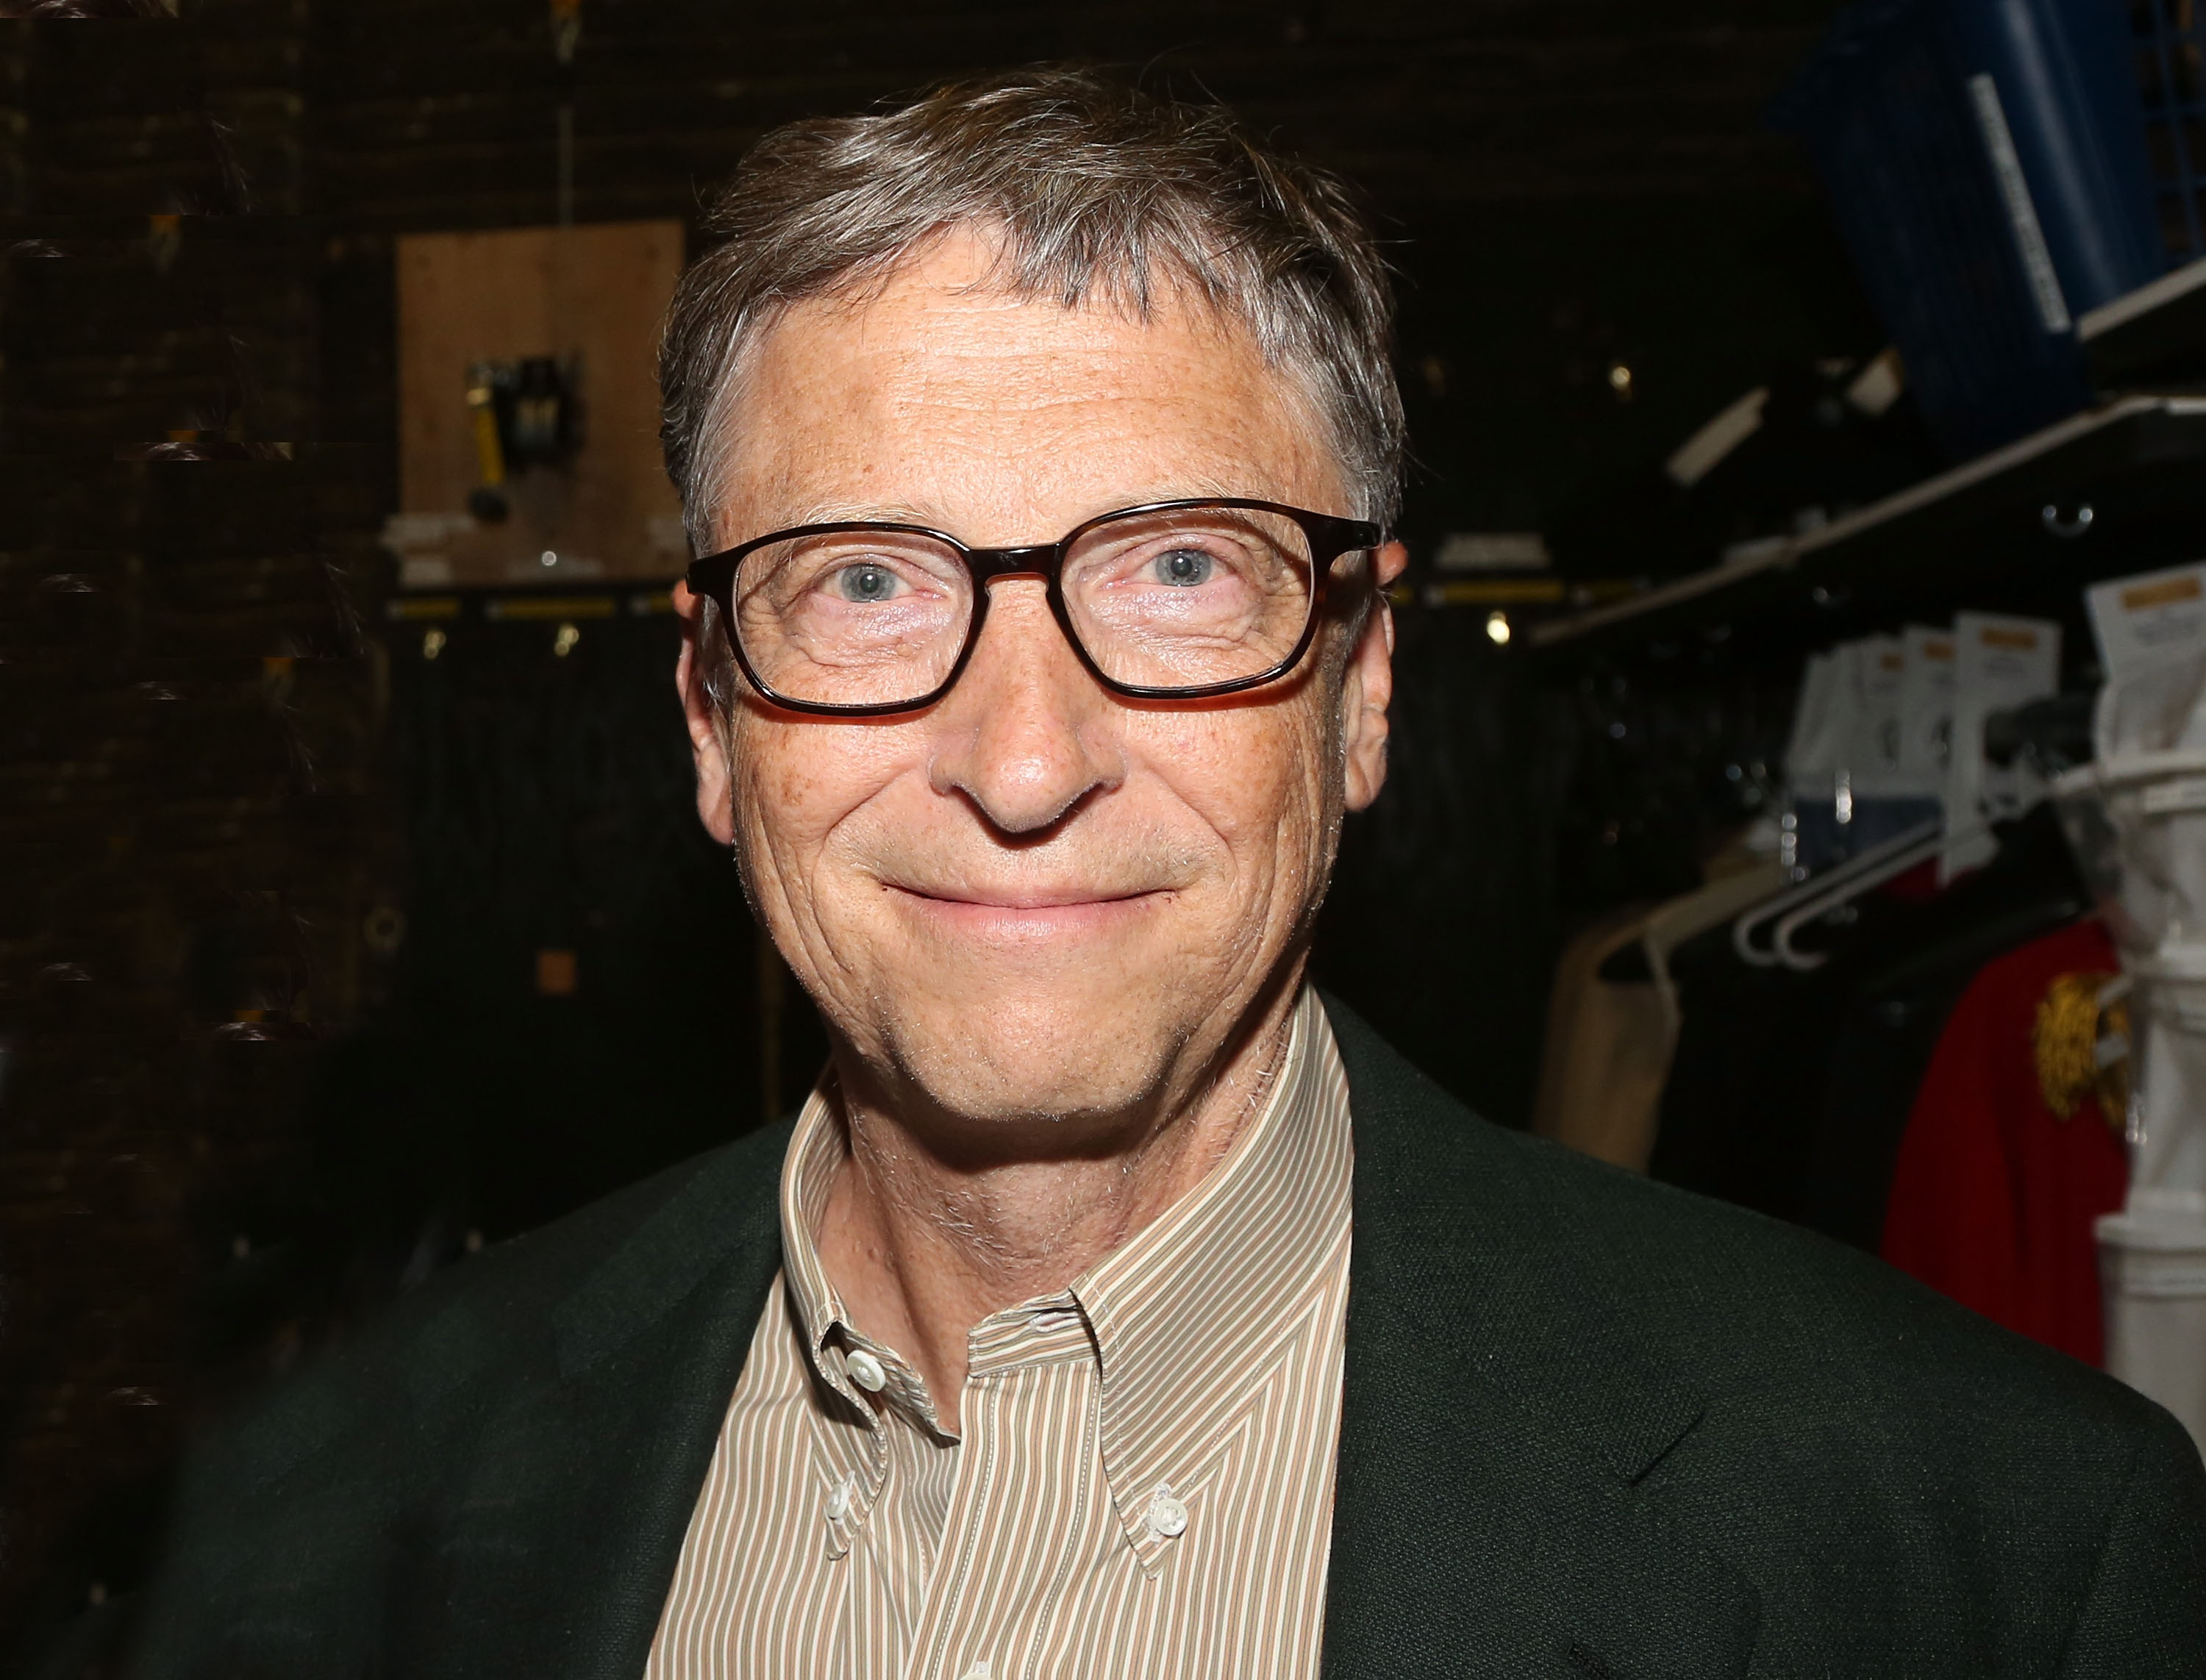 Bill Gates at the backtage of the musical 'Hamilton' on Broadway in New York City on Oct. 11, 2015.